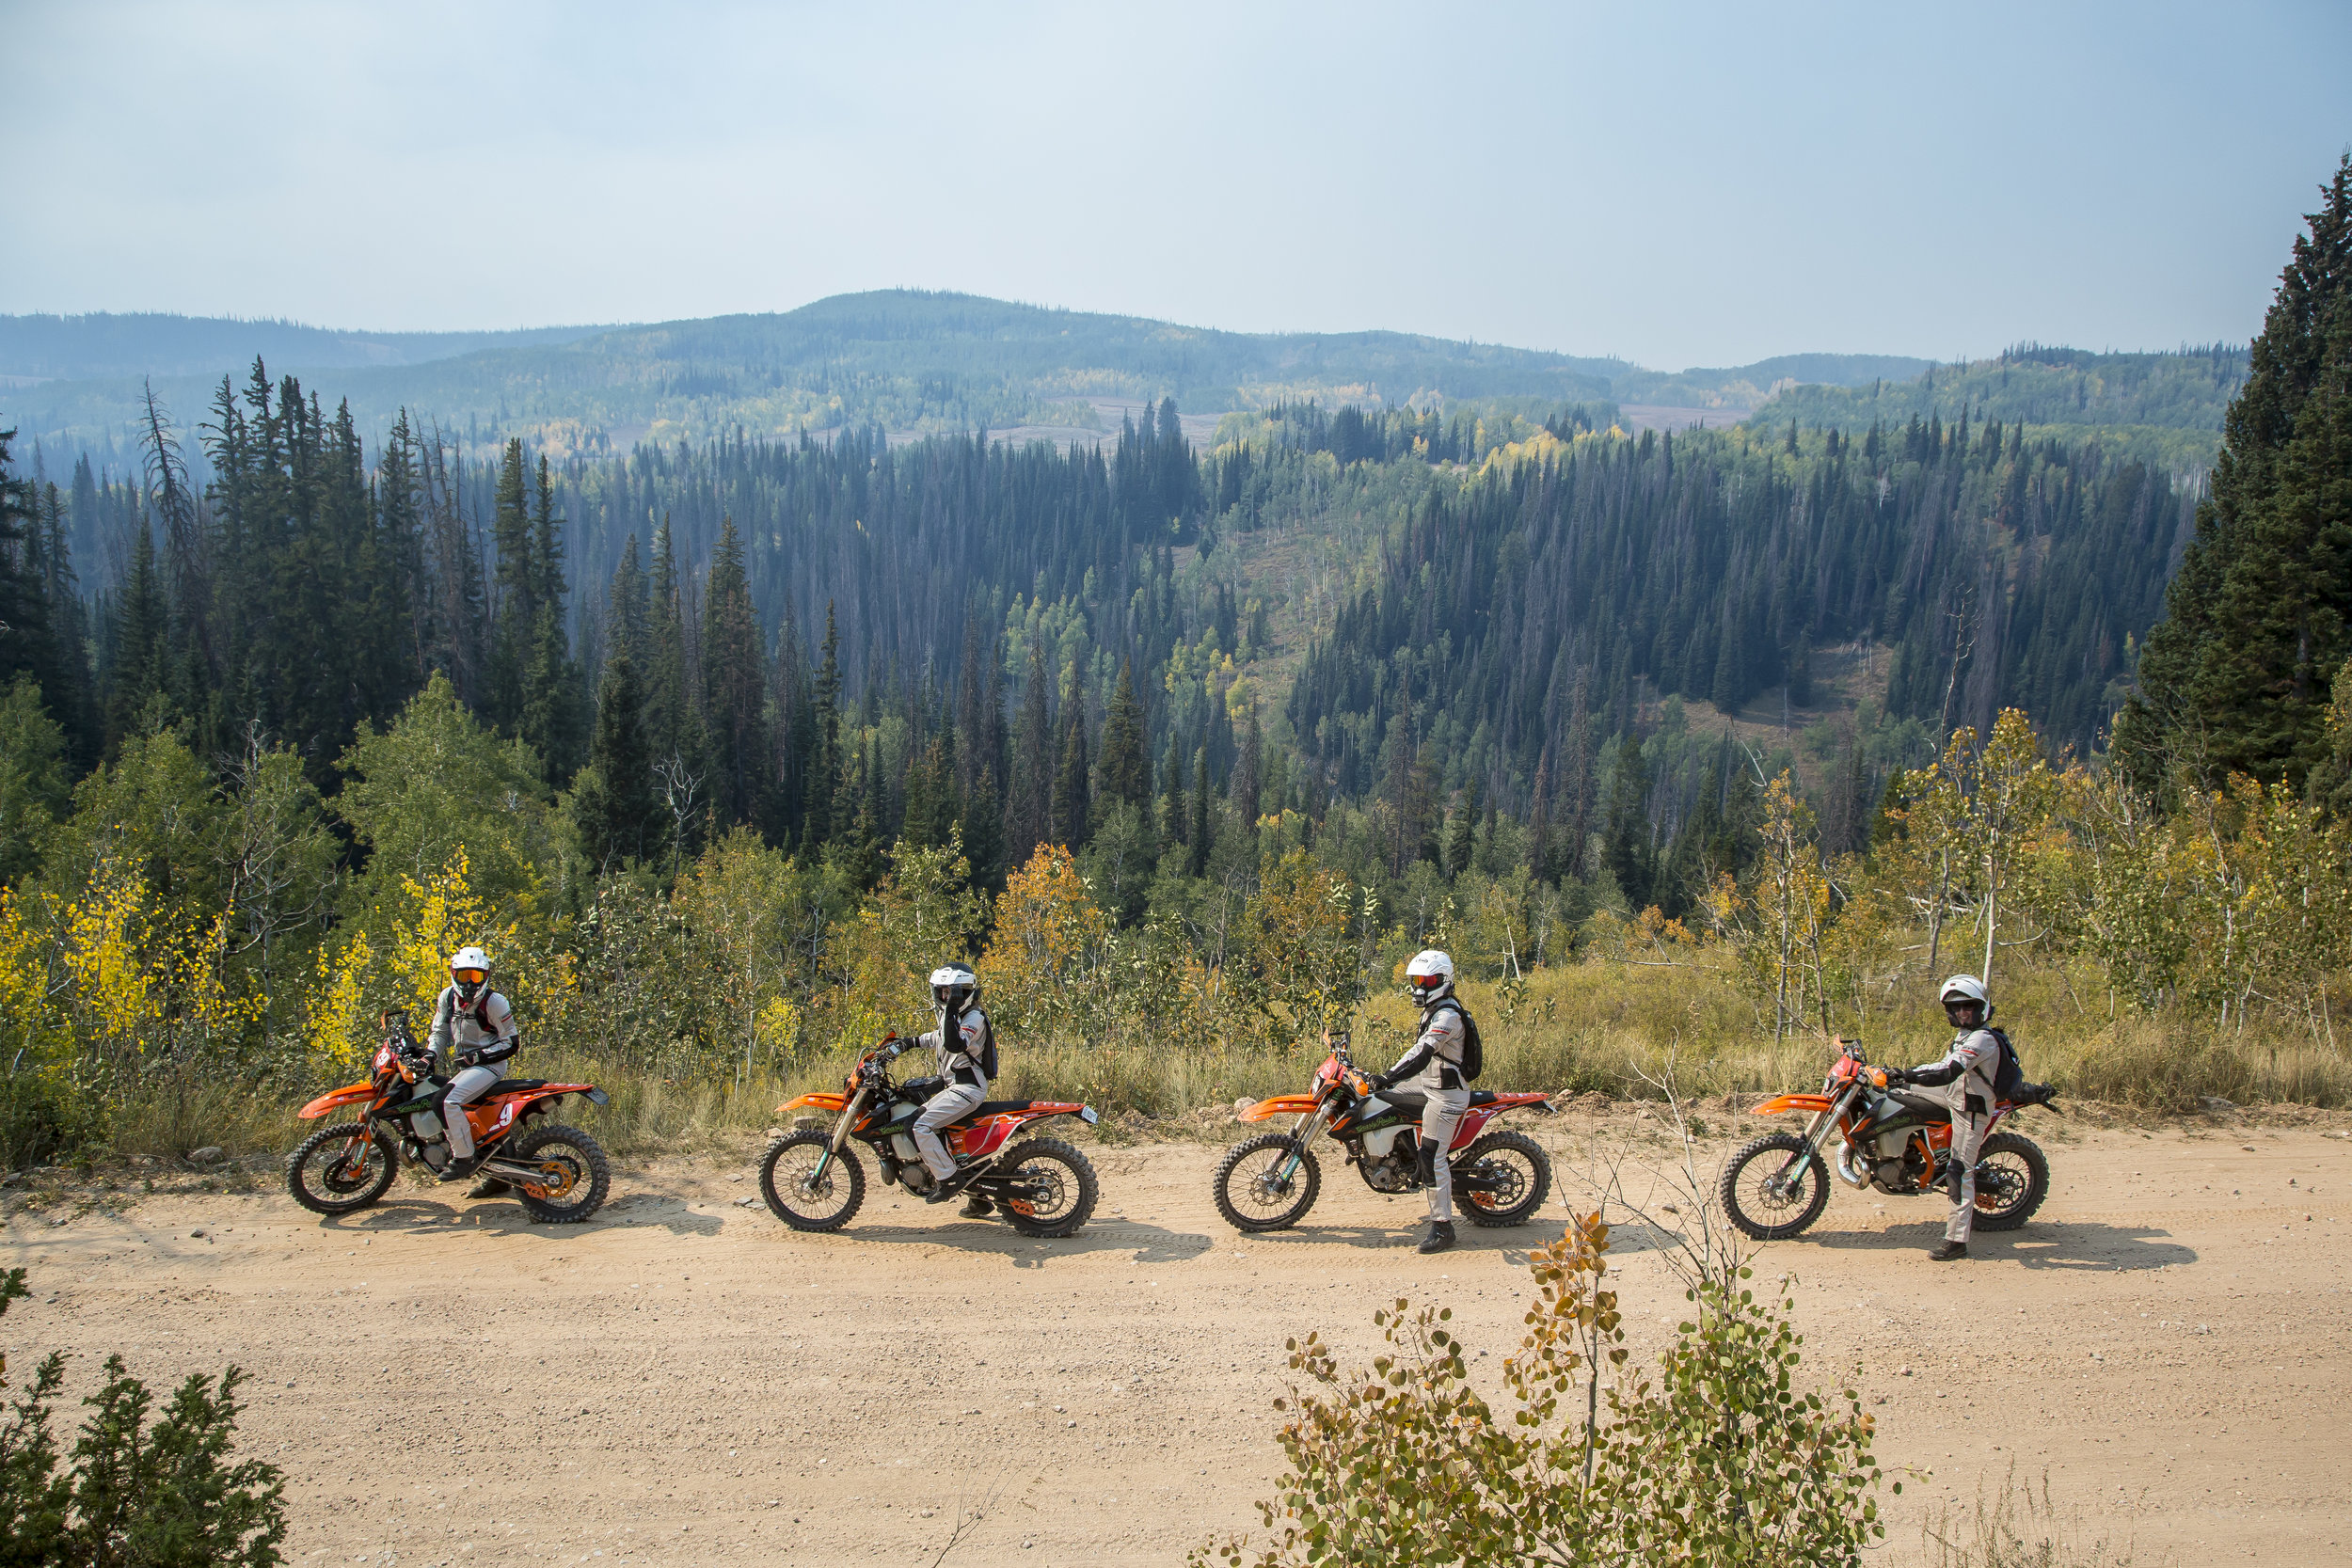 photo taken at the KTM rally in Park City, Utah by Julia LaPalme